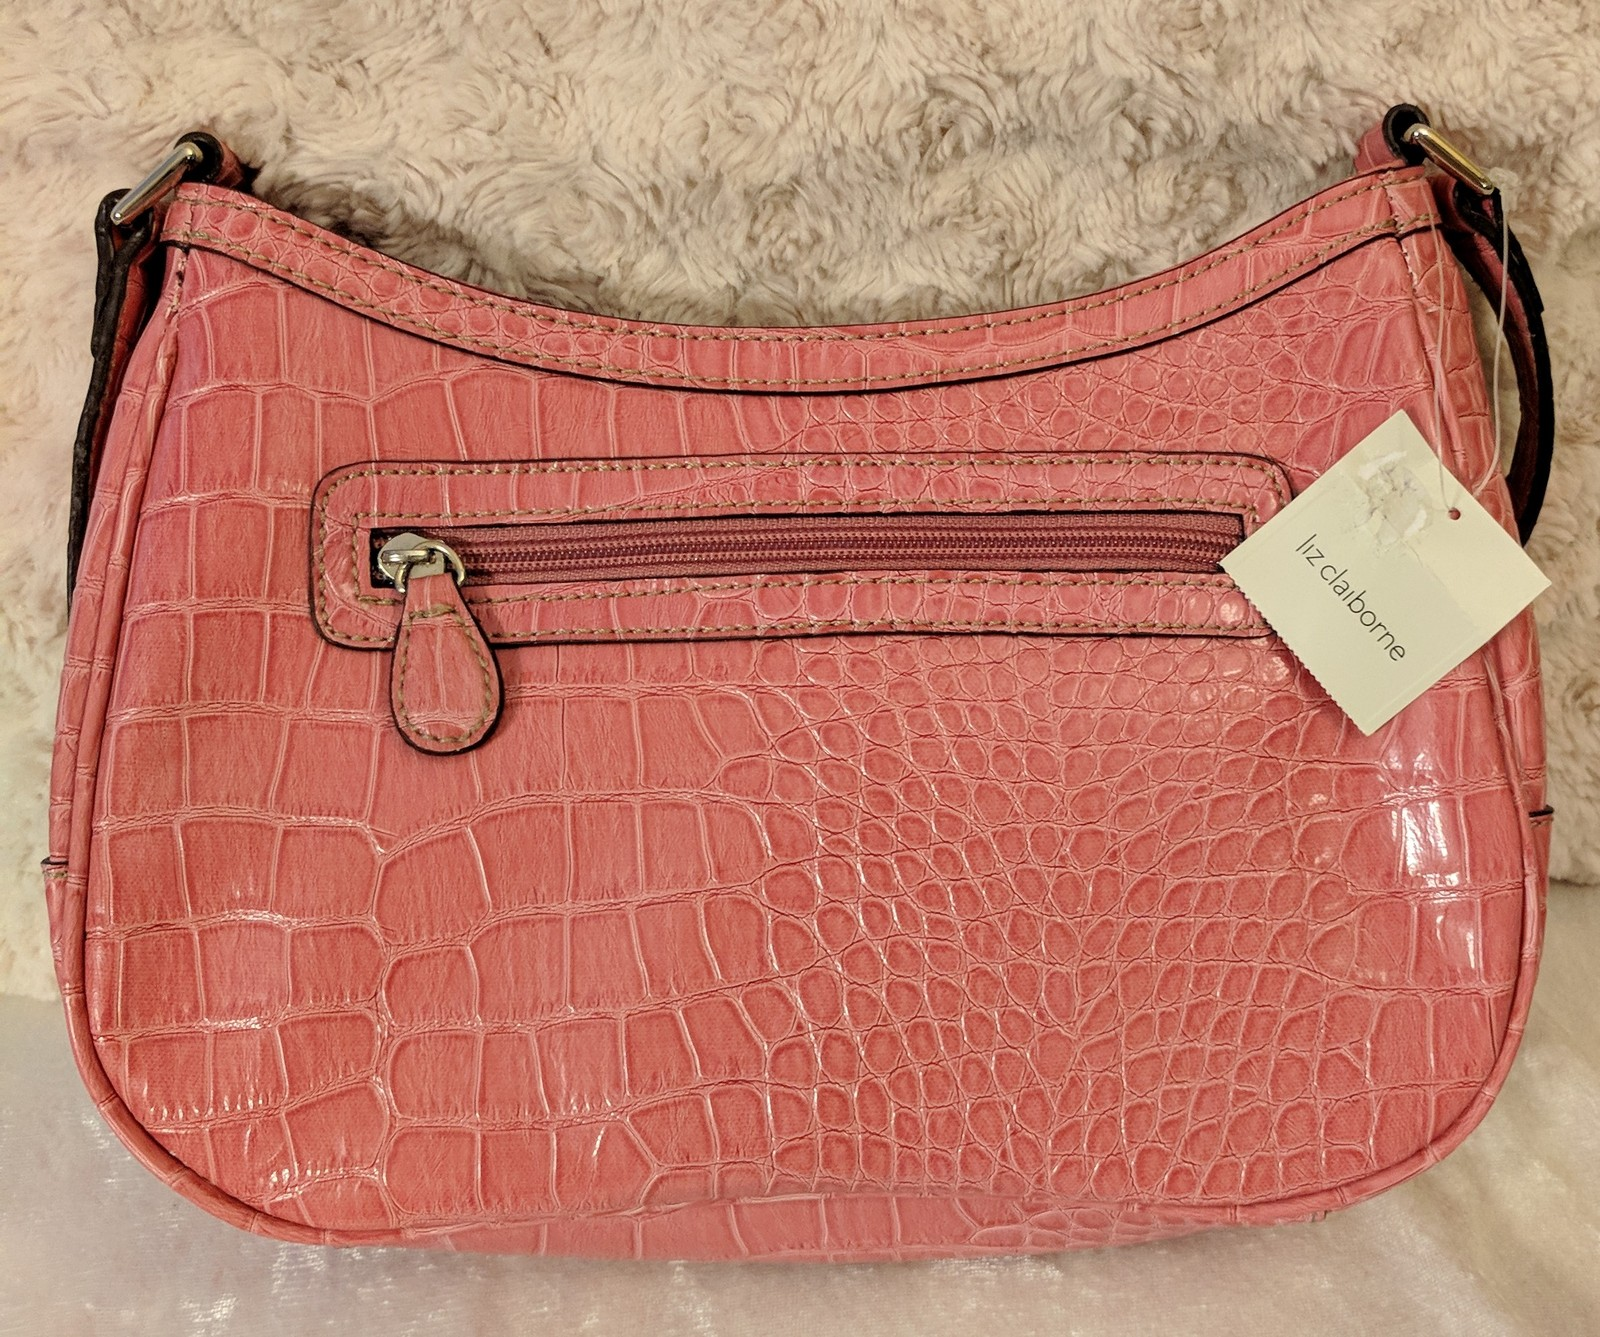 NWT Liz Claiborne Small Pink Purse Shoulder and 40 similar items. Img  20171104 182017 295c04eb52830